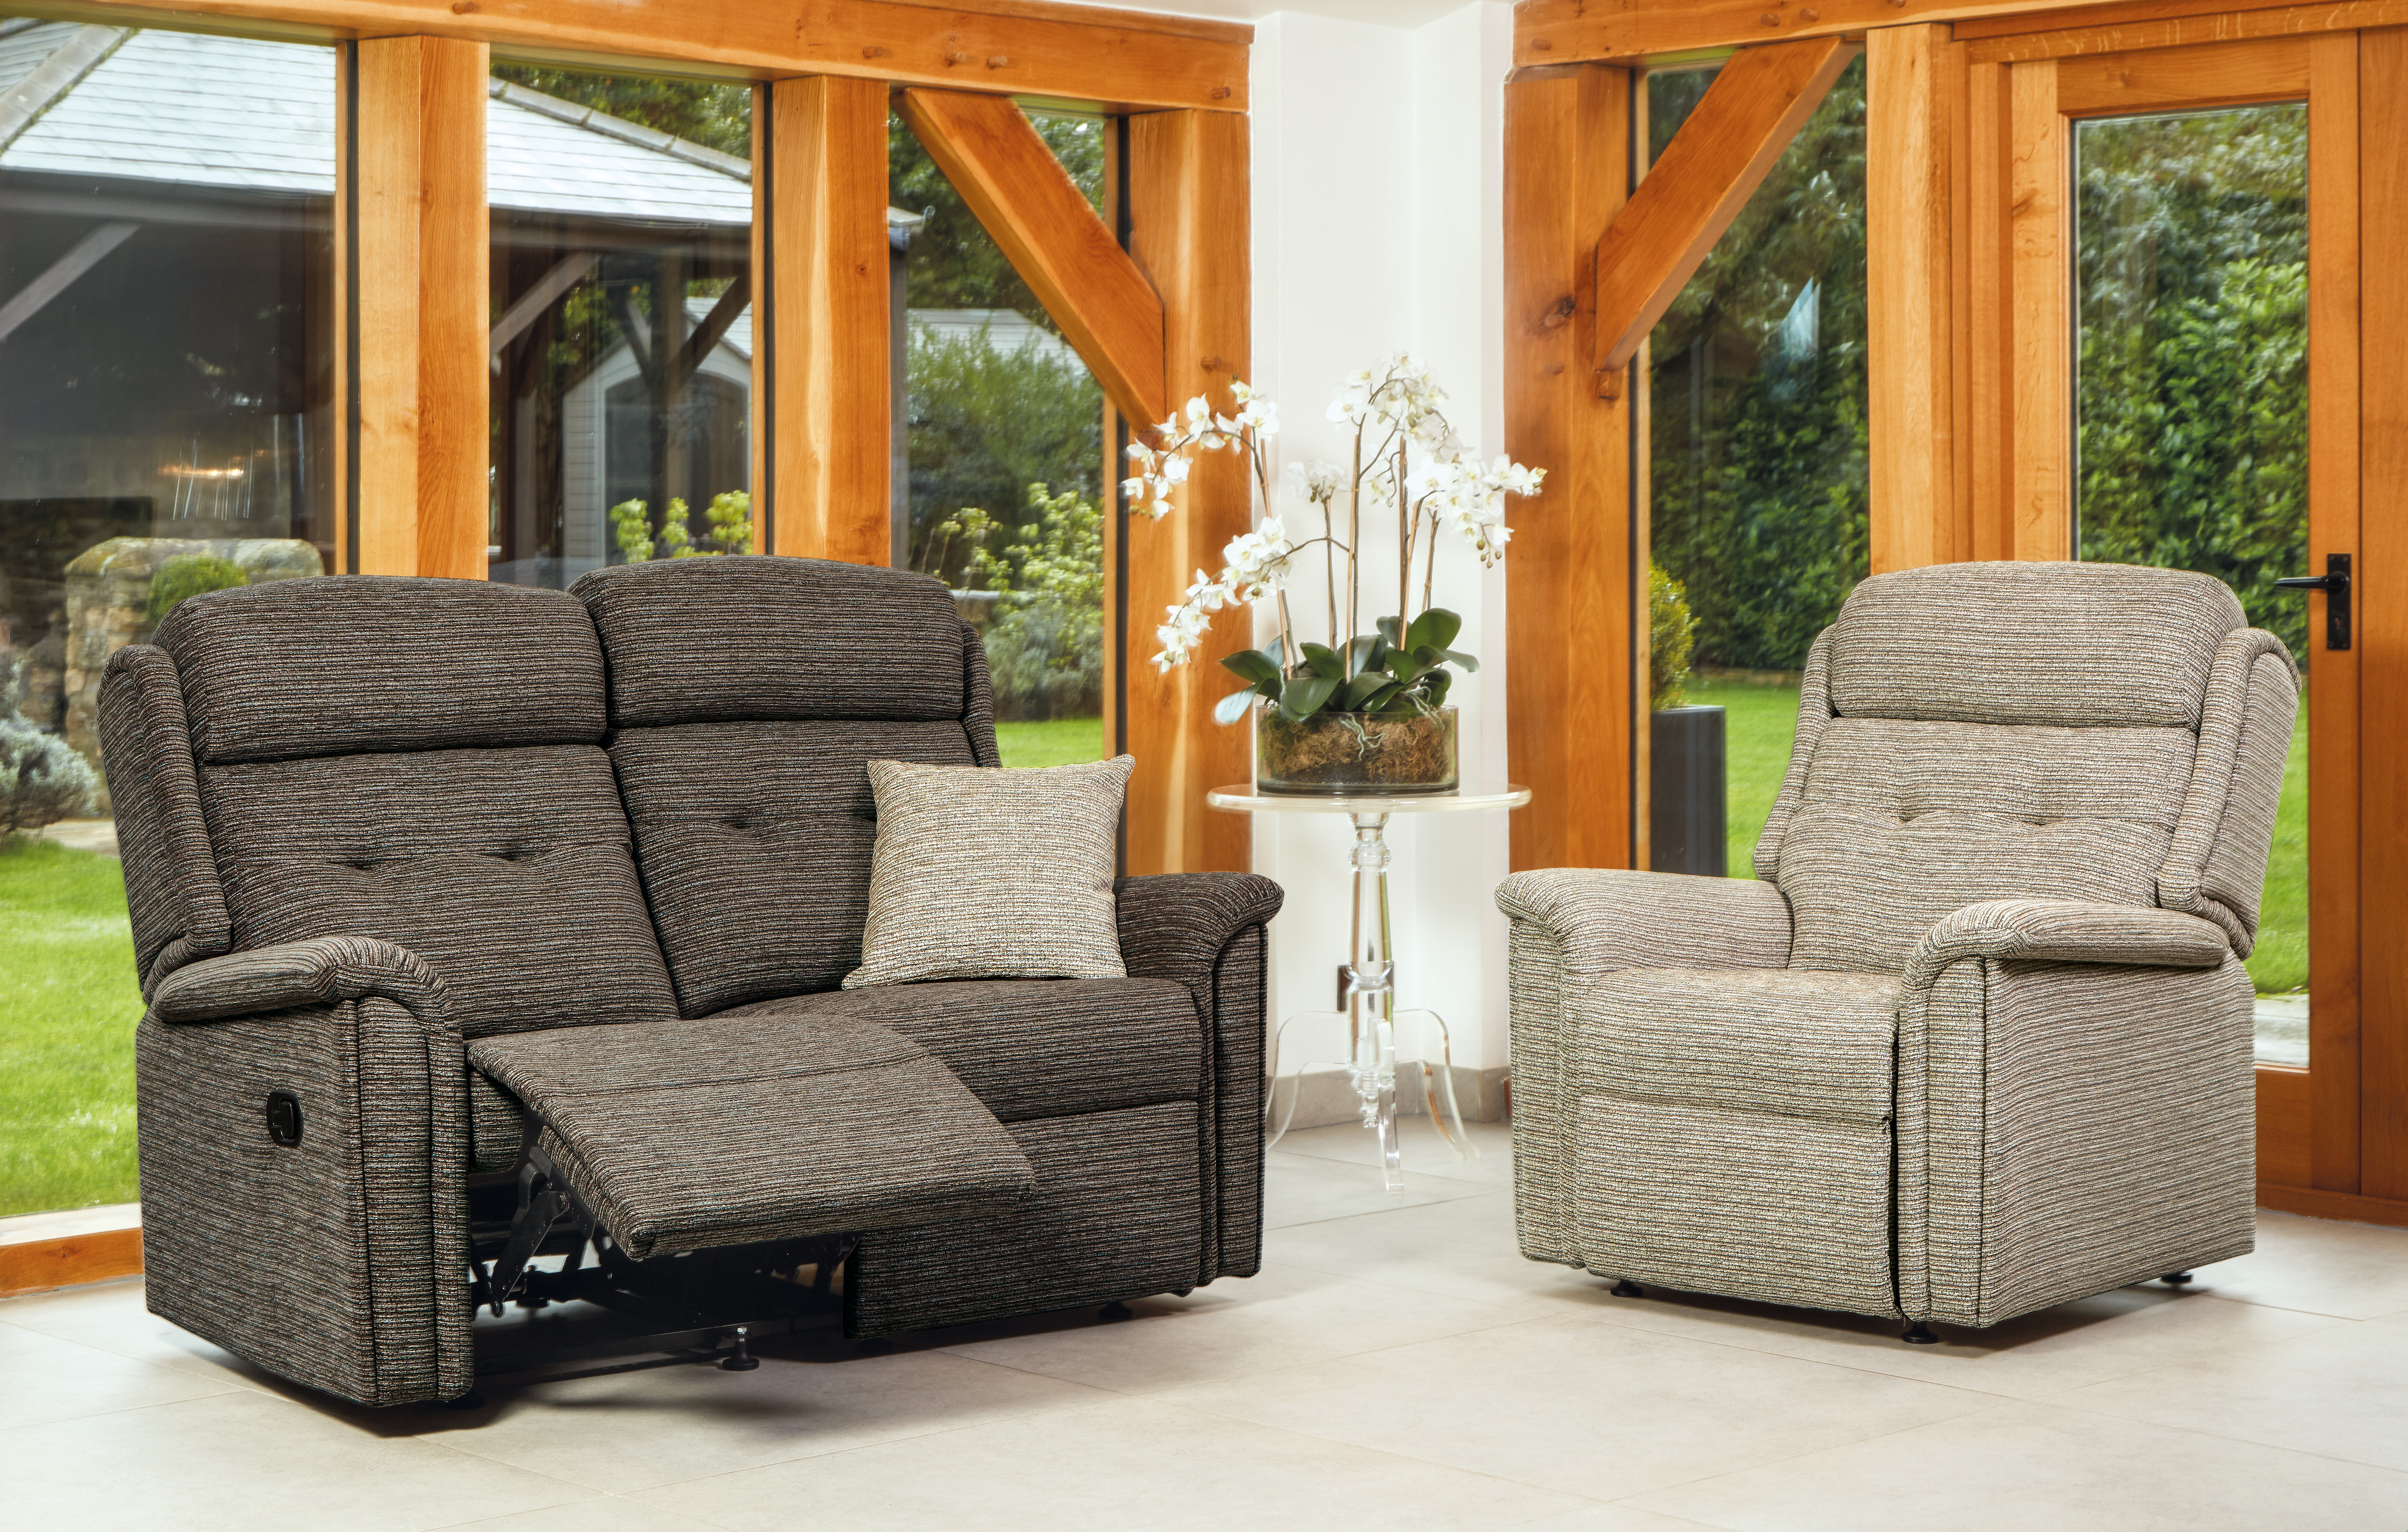 Roma Small 2-Seater Recliner, Small Fixe